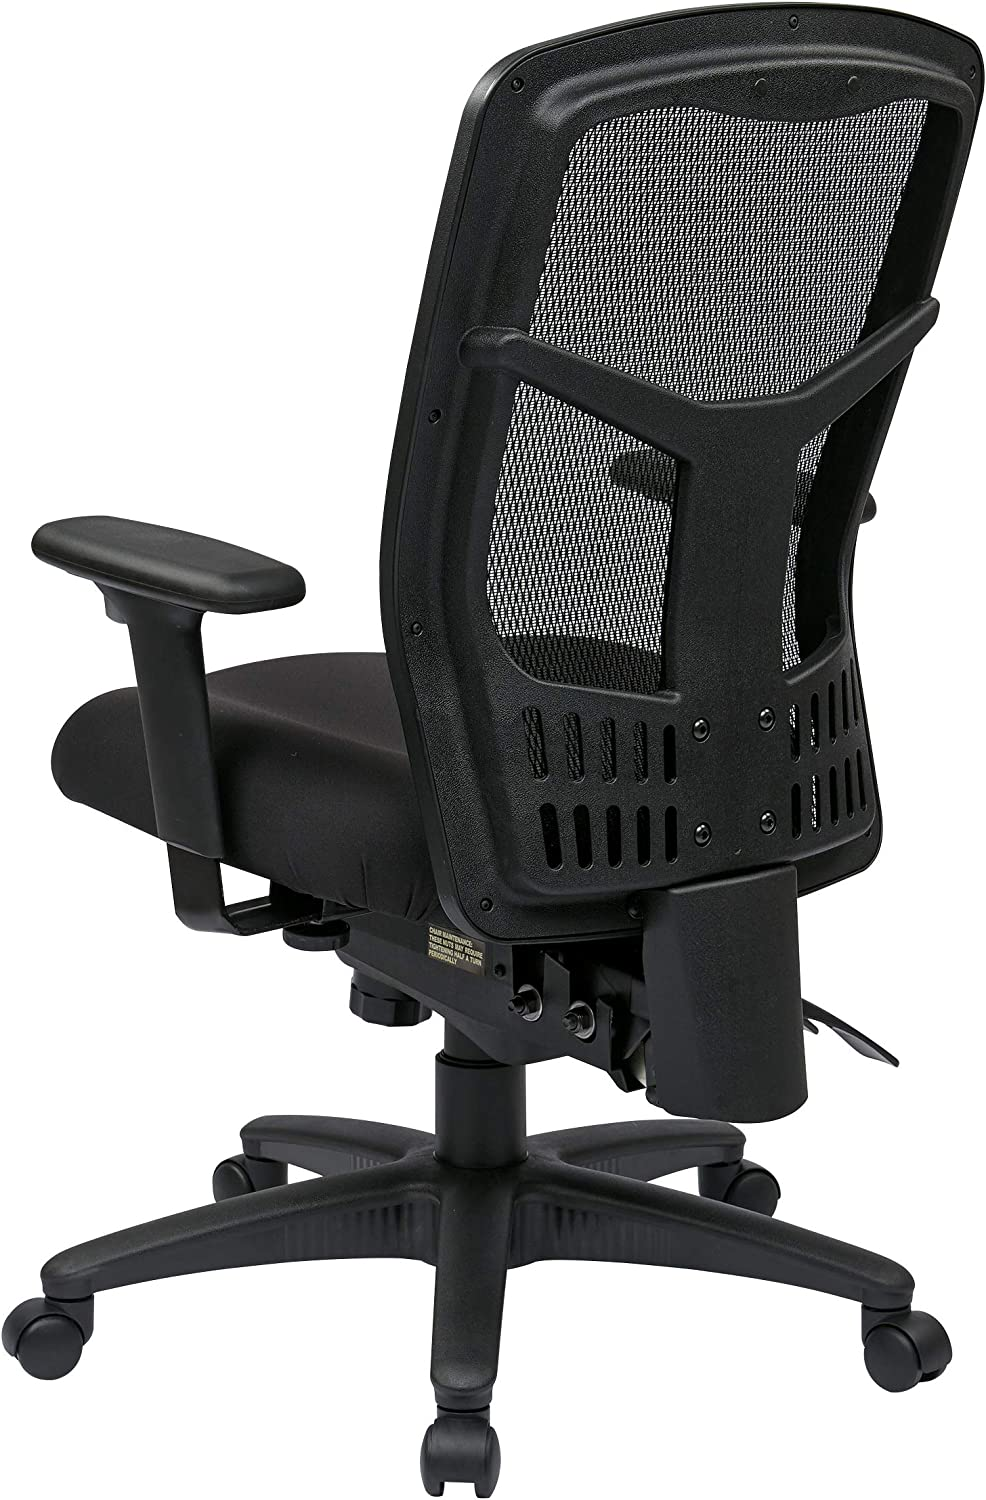 - What is The Best Chair For Sciatica Nerve Problems? Get Relief from Sciatica Pain - ChairPicks